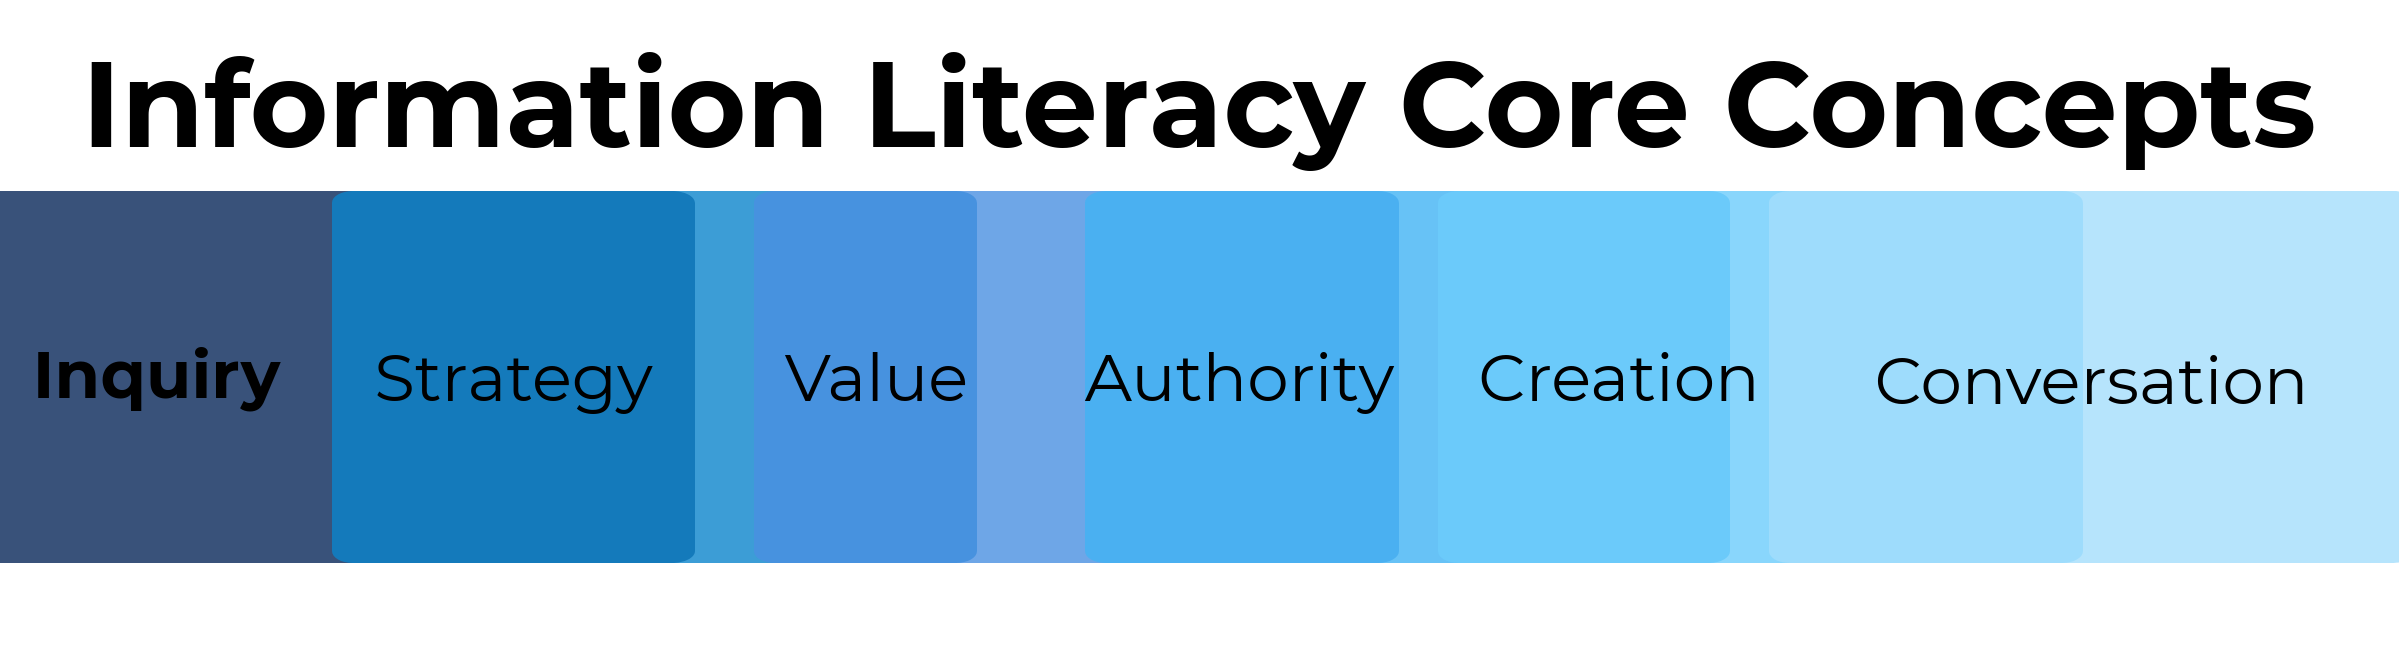 An image of six core concepts of information literacy